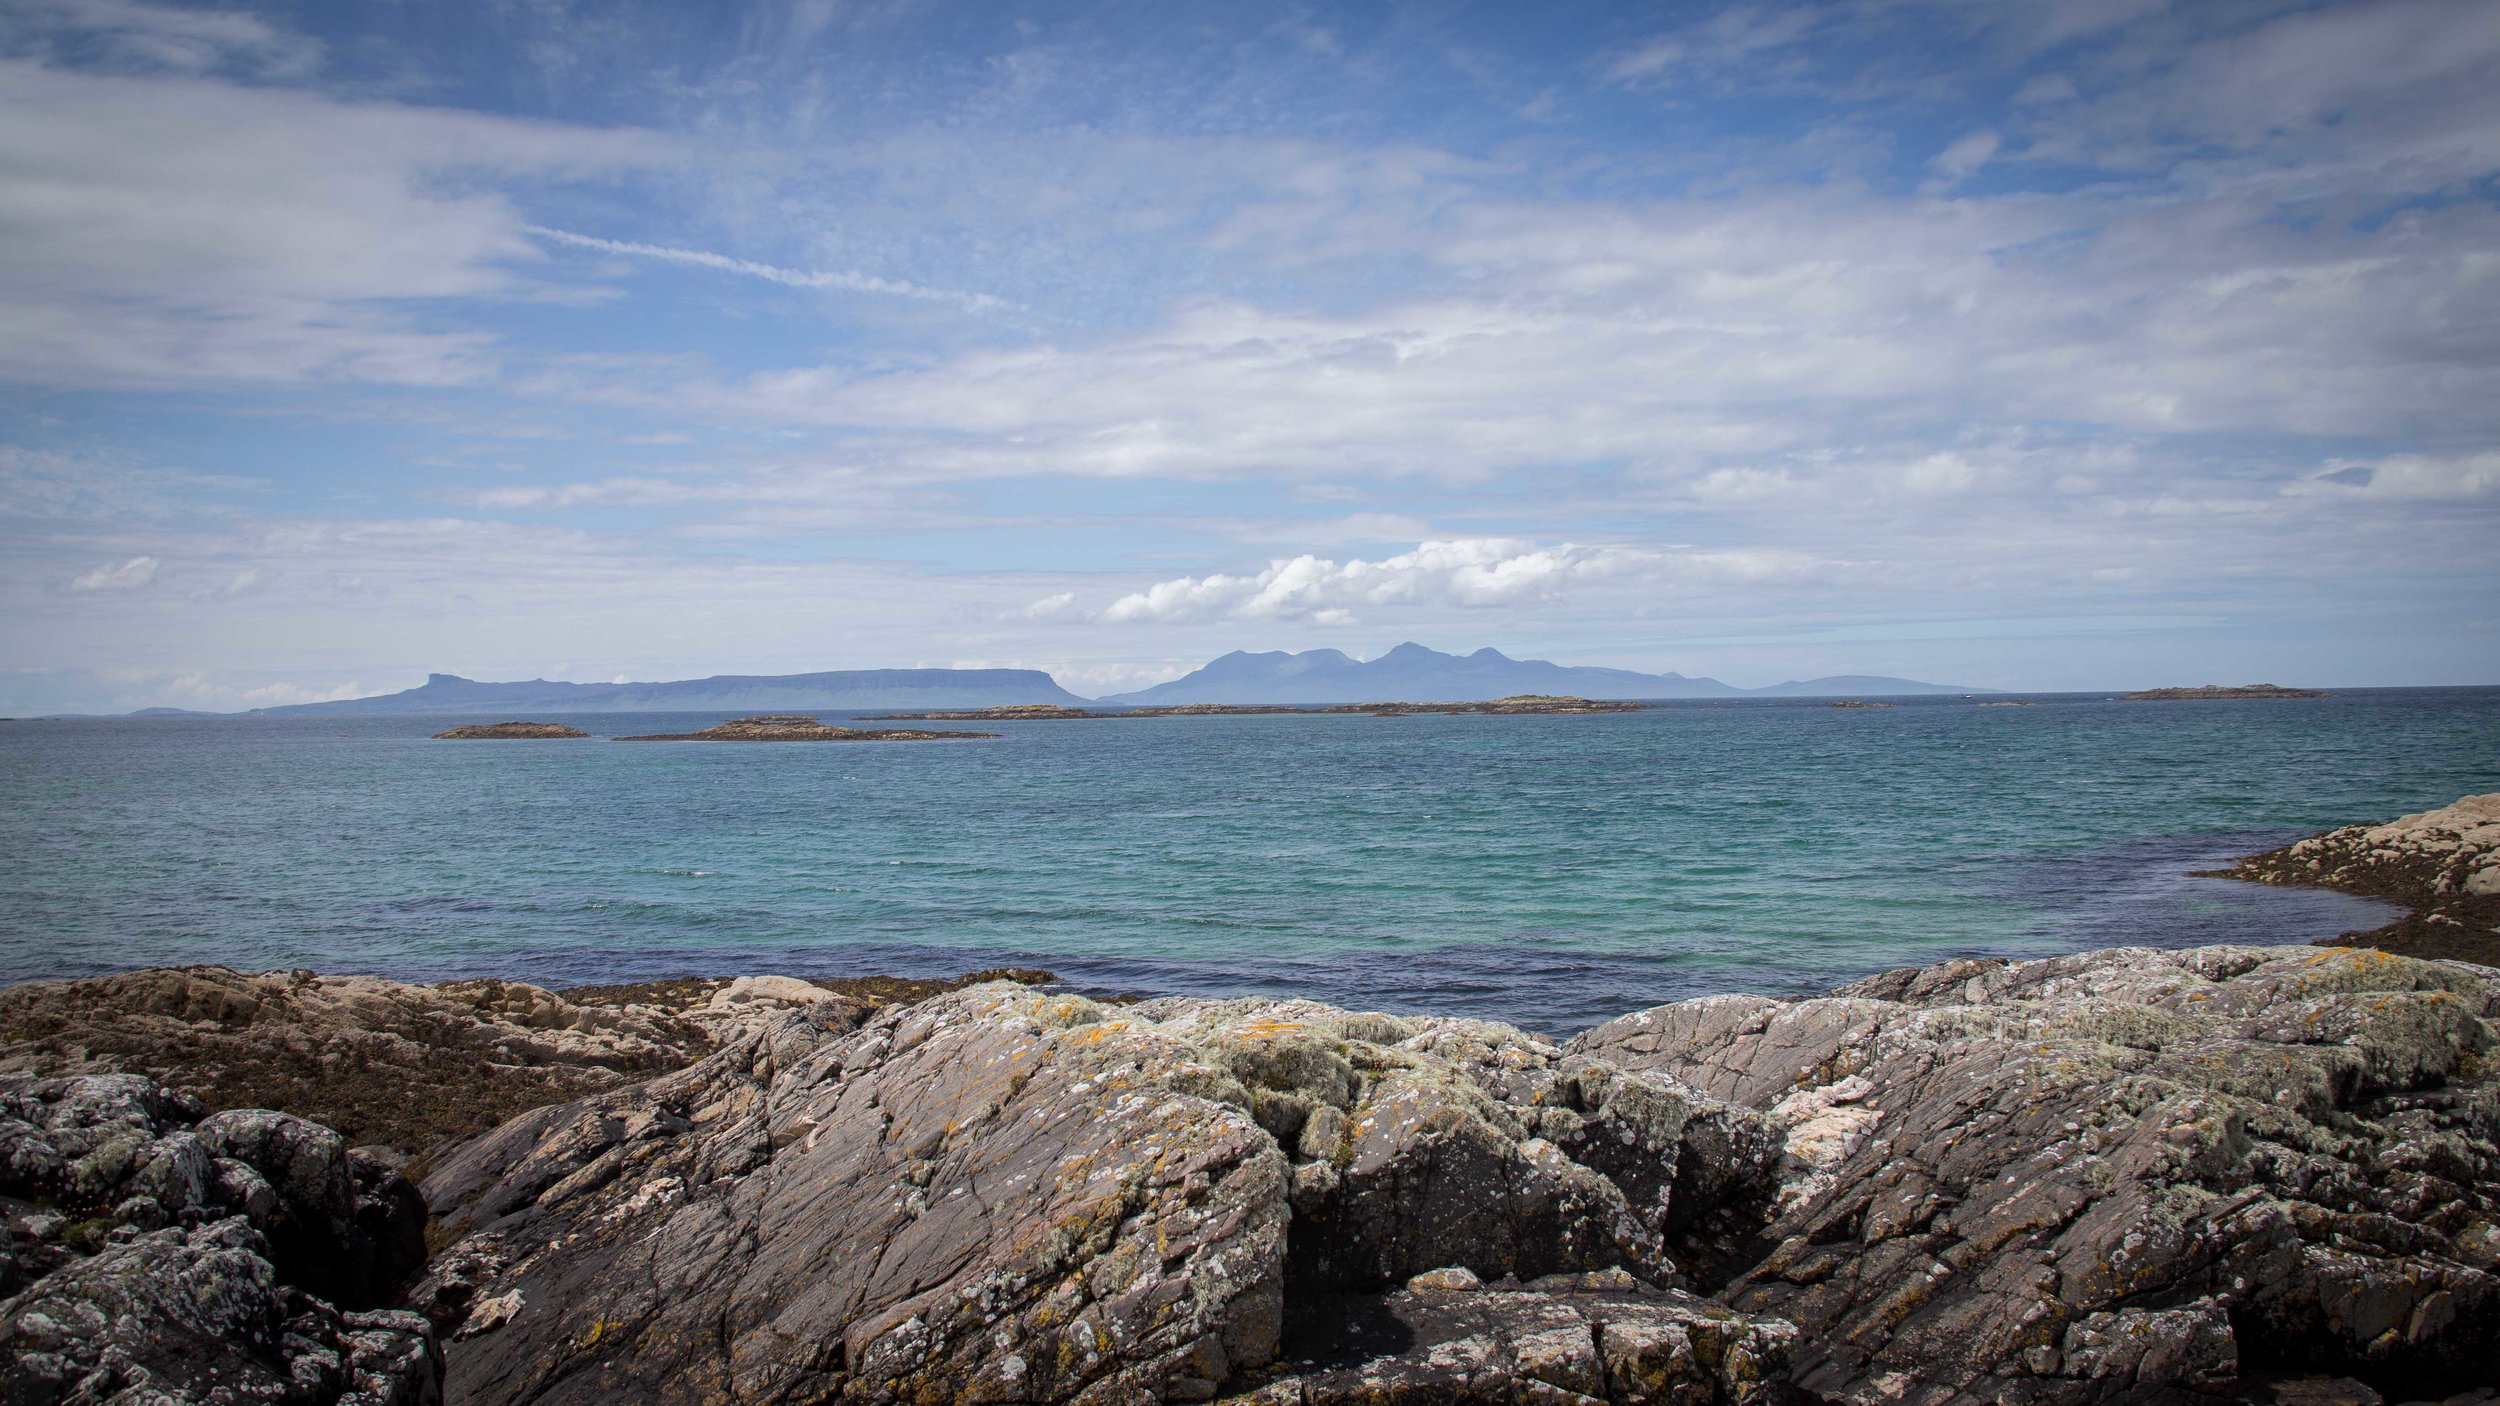 Two of the Small Isles, Eigg (on the left) and Rum (on the right). Locals used to have a superstition of not referring to the islands by their names. Instead they called Eigg the 'Island of the Big Woman'. Apparently a tribe with women of Amazonia stature used to repel those attempting to land on their island. A similar tale is told of Rum, or the 'Forbidden Island', here the islanders used guns to deter visitors. I'm sure both are much more friendly today. Rum's skyline looks similar to that of the Cullins. Both ridges share similar geology and it was the Viking rulers of Rum that gave the Cullins their name.